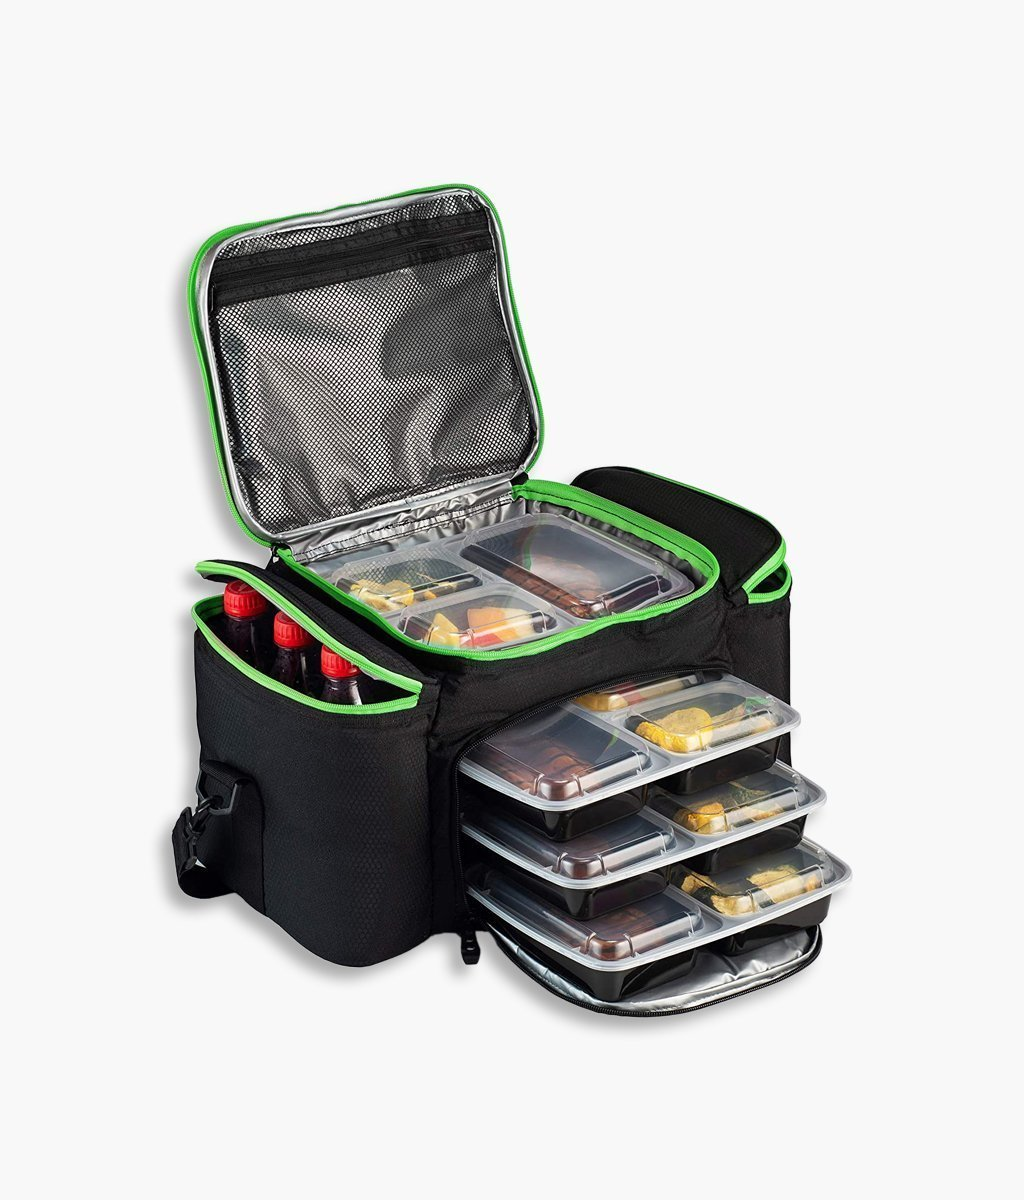 Cooler Bag Insulated for Camping